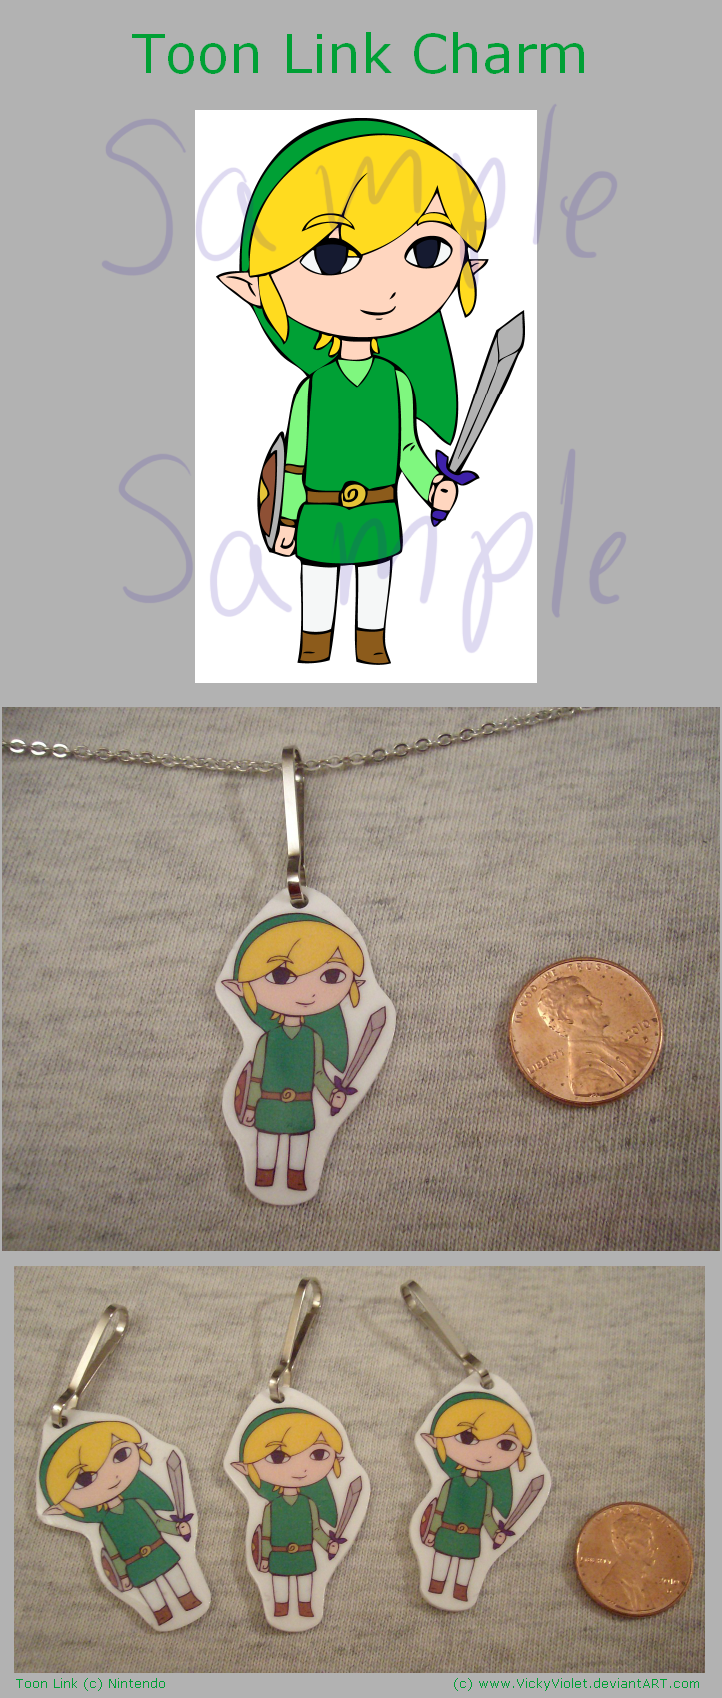 Toon Link Charm by VickyViolet